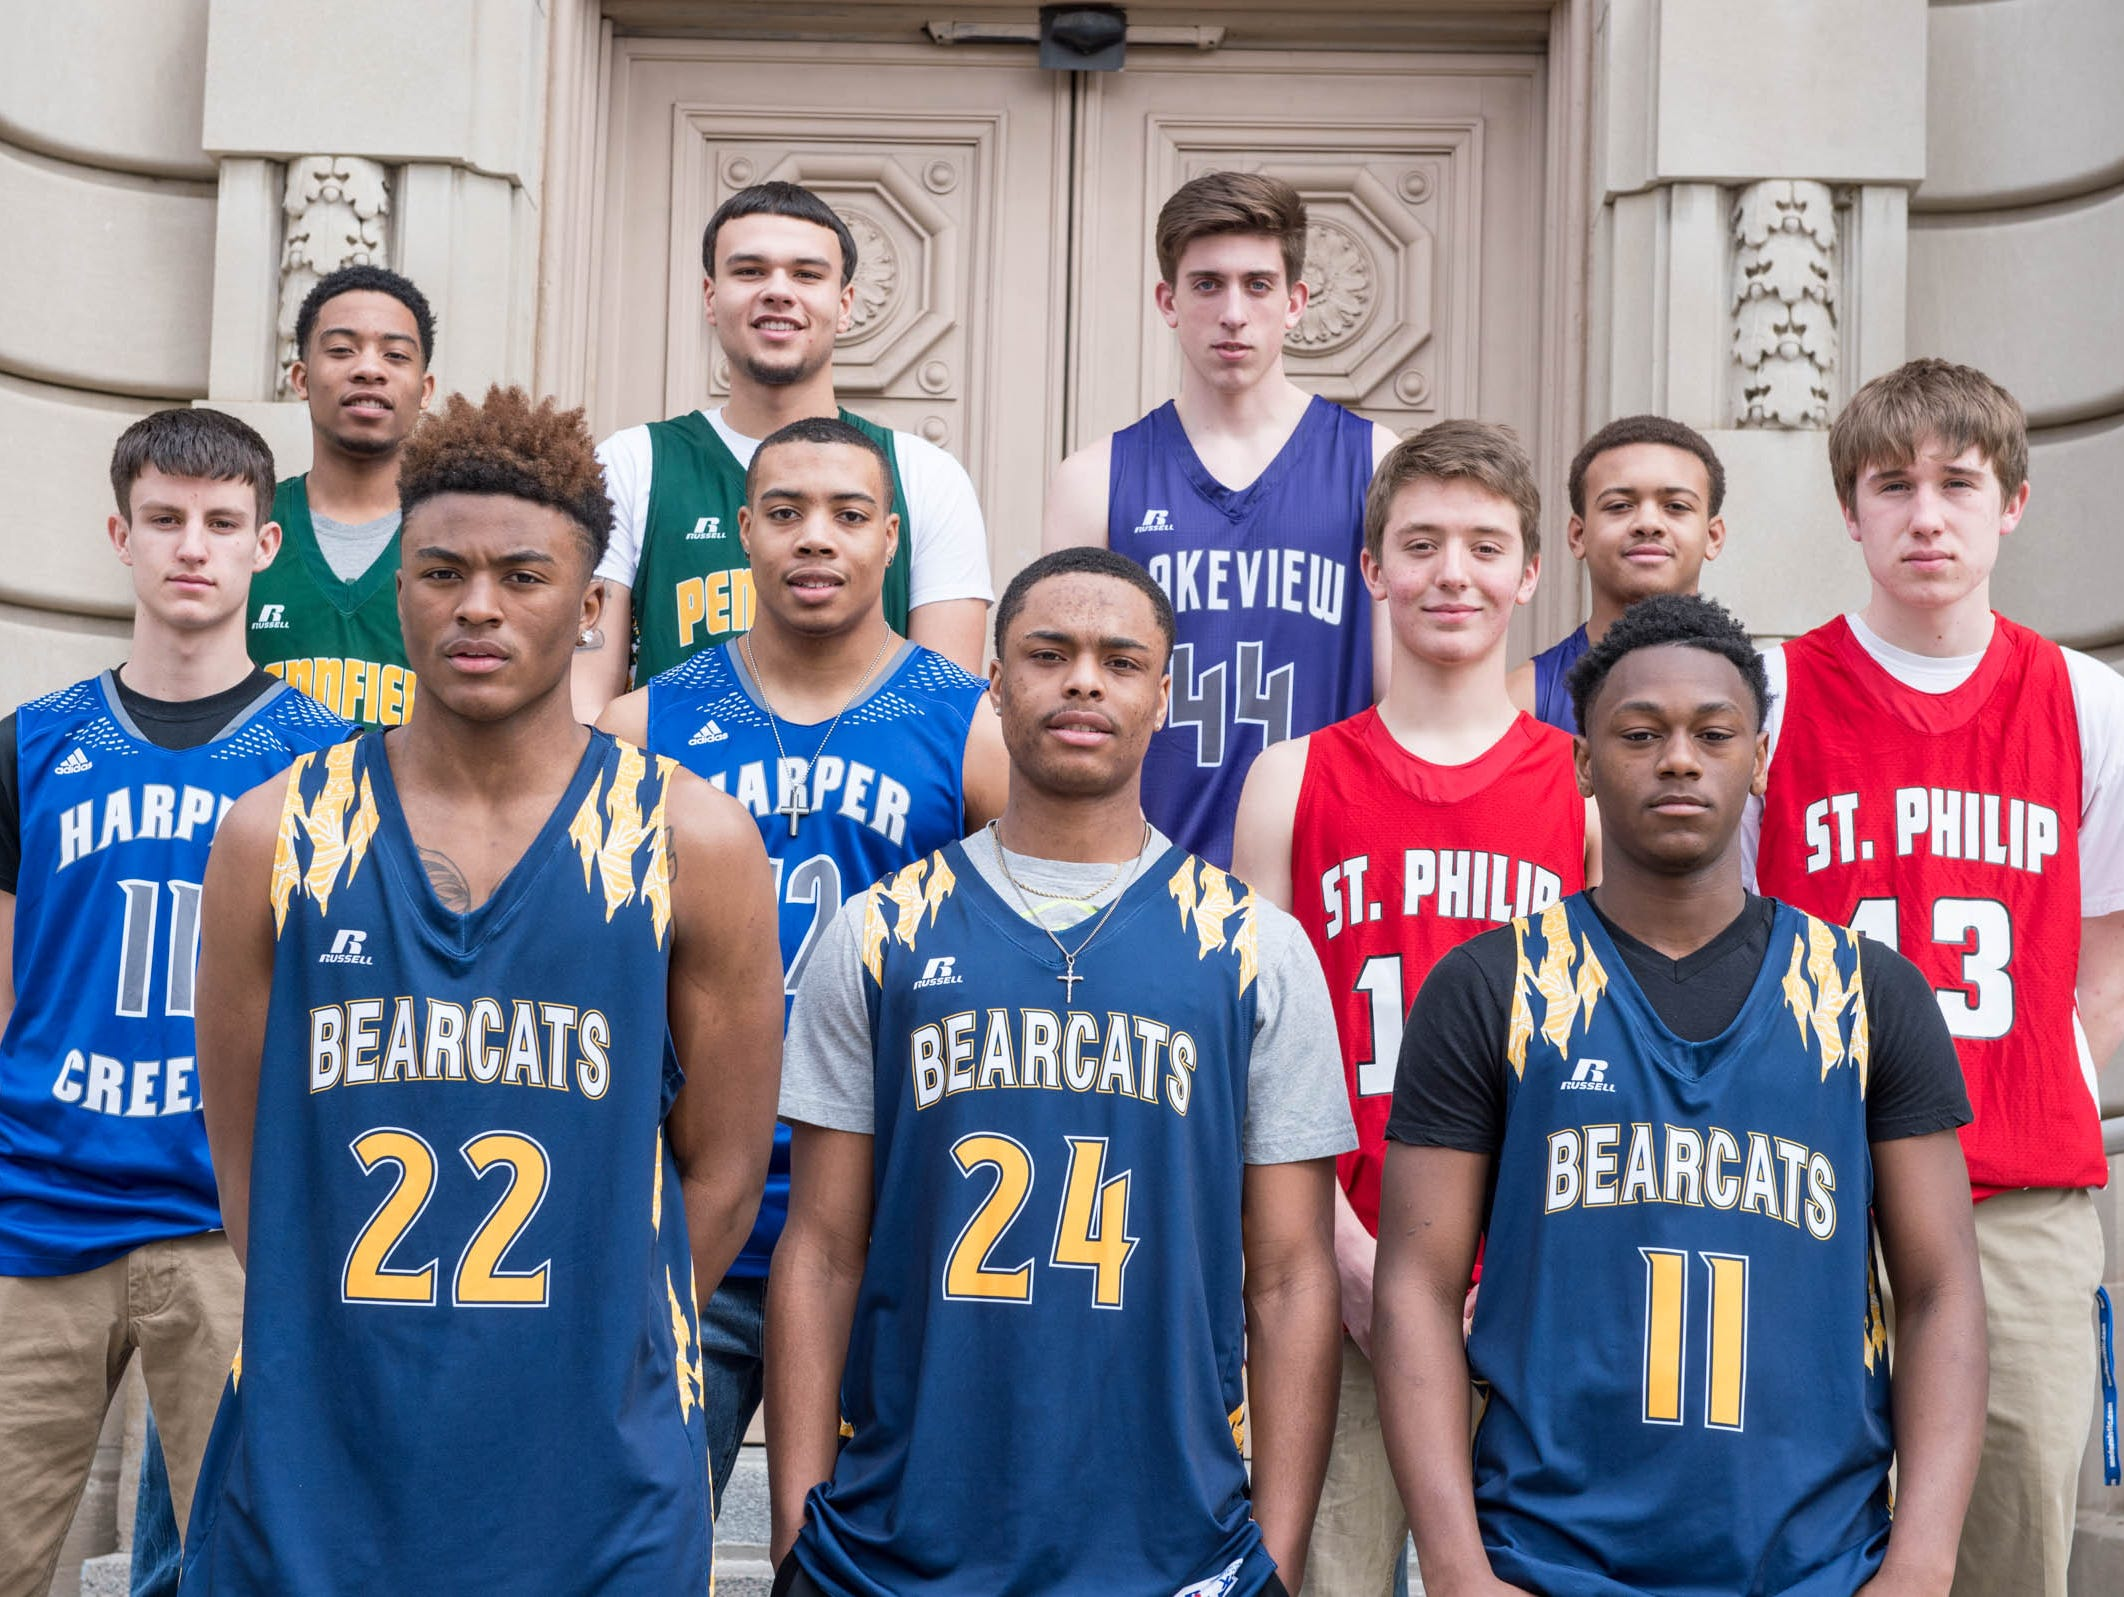 The Battle Creek Enquirer All-City Boys Basketball Team is made up of players from the five city schools and is voted on by the city coaches and the Enquirer sports staff.